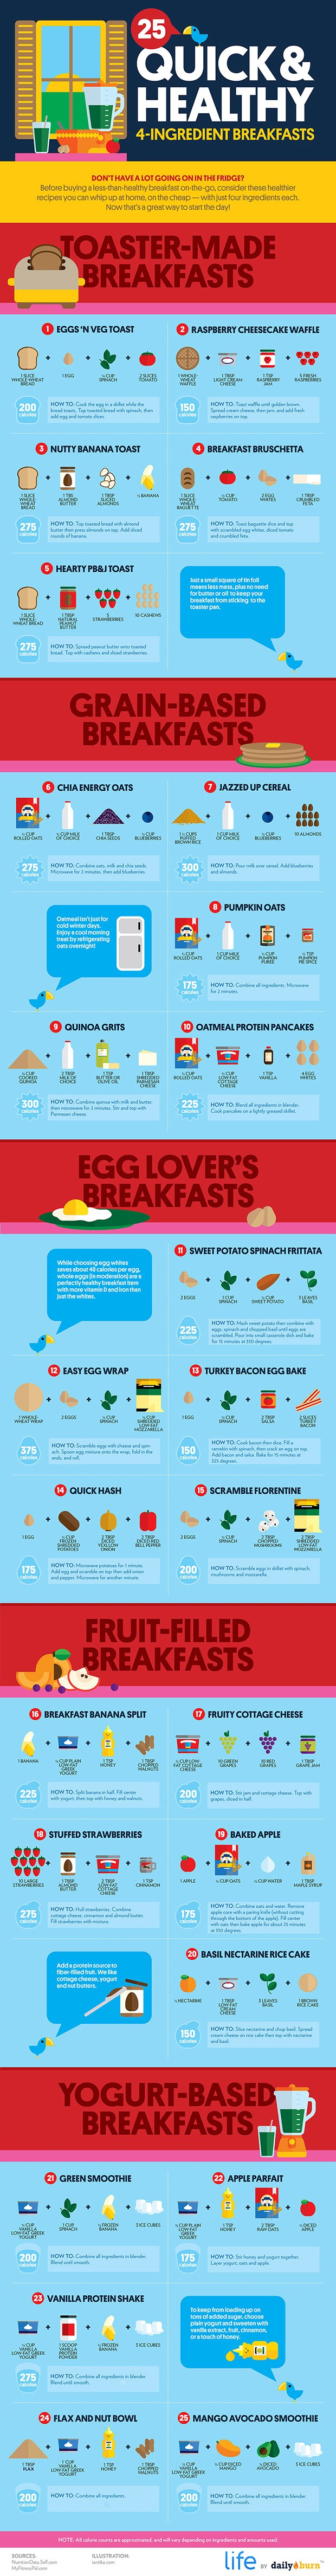 25 Quick and Healthy 4-Ingredient Breakfast Recipes #infographic